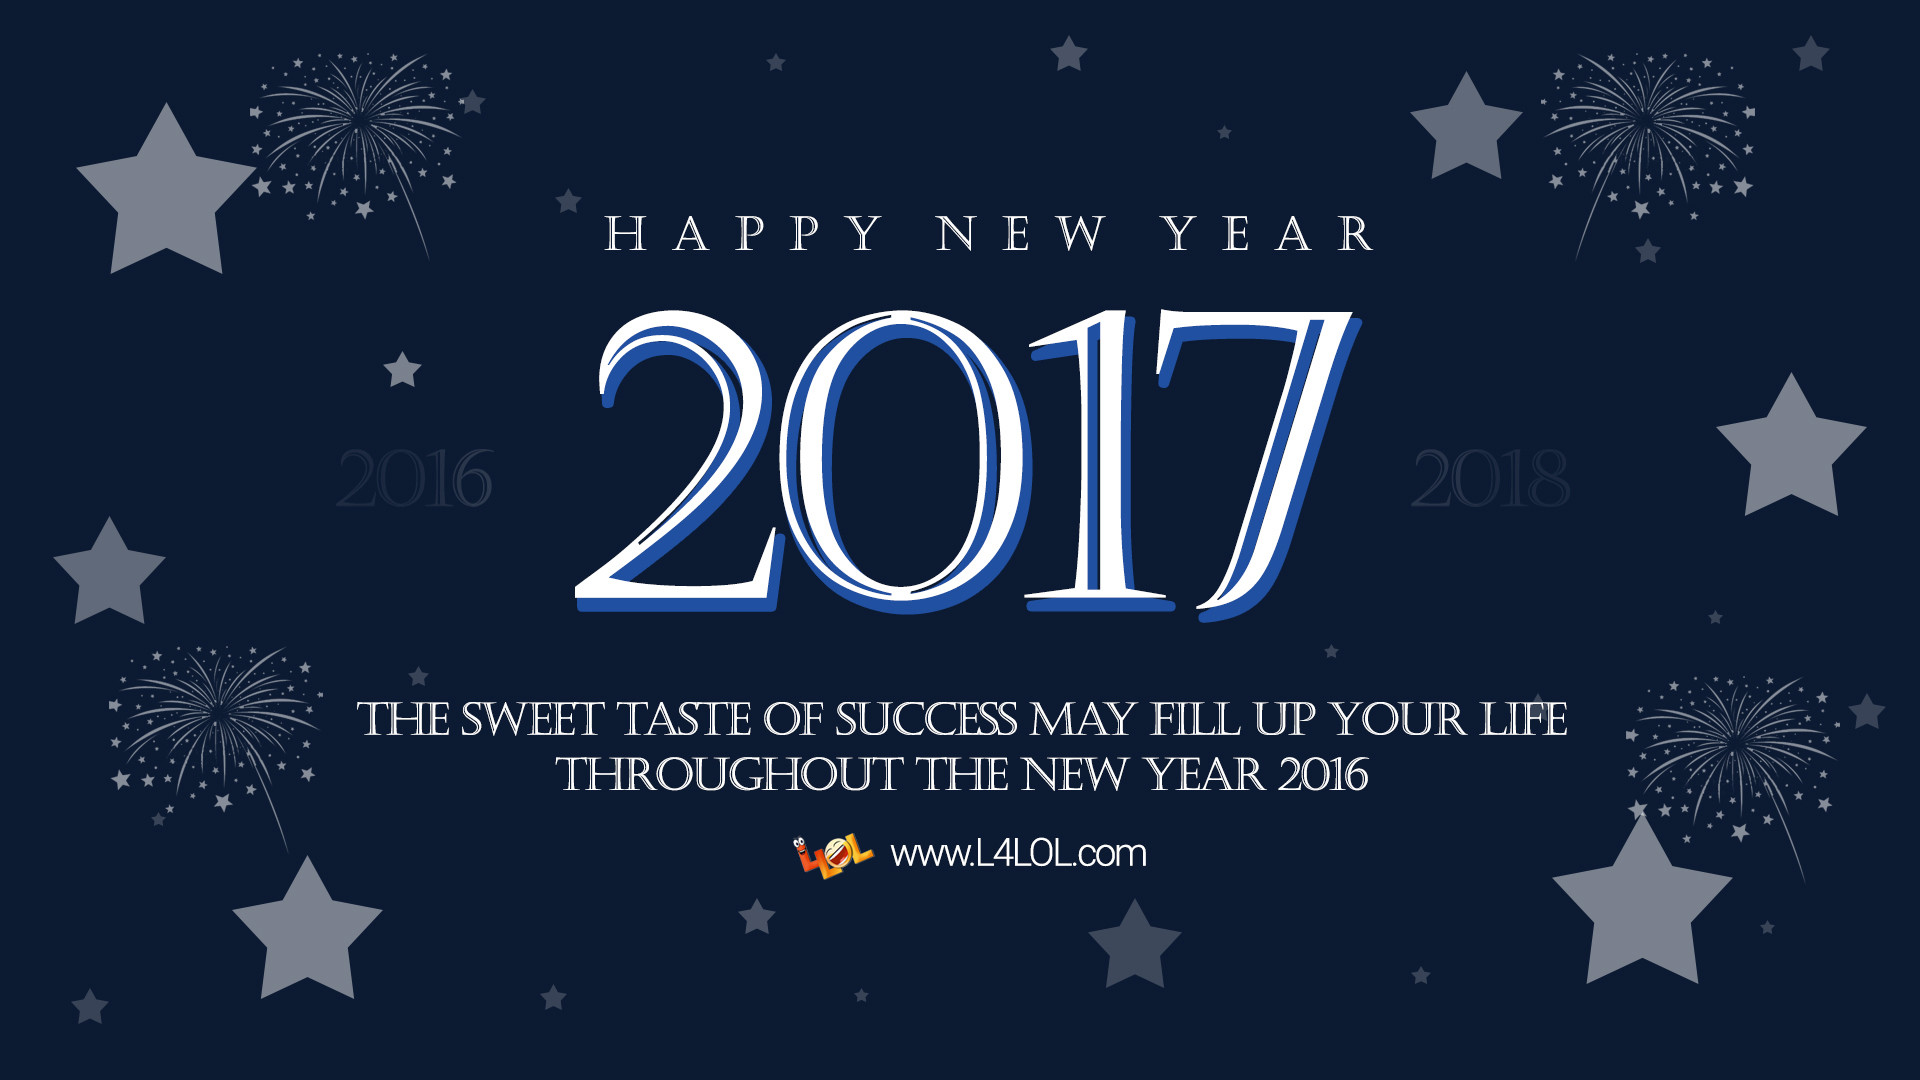 New Year 2017 Wallpaper HD (76+ images)